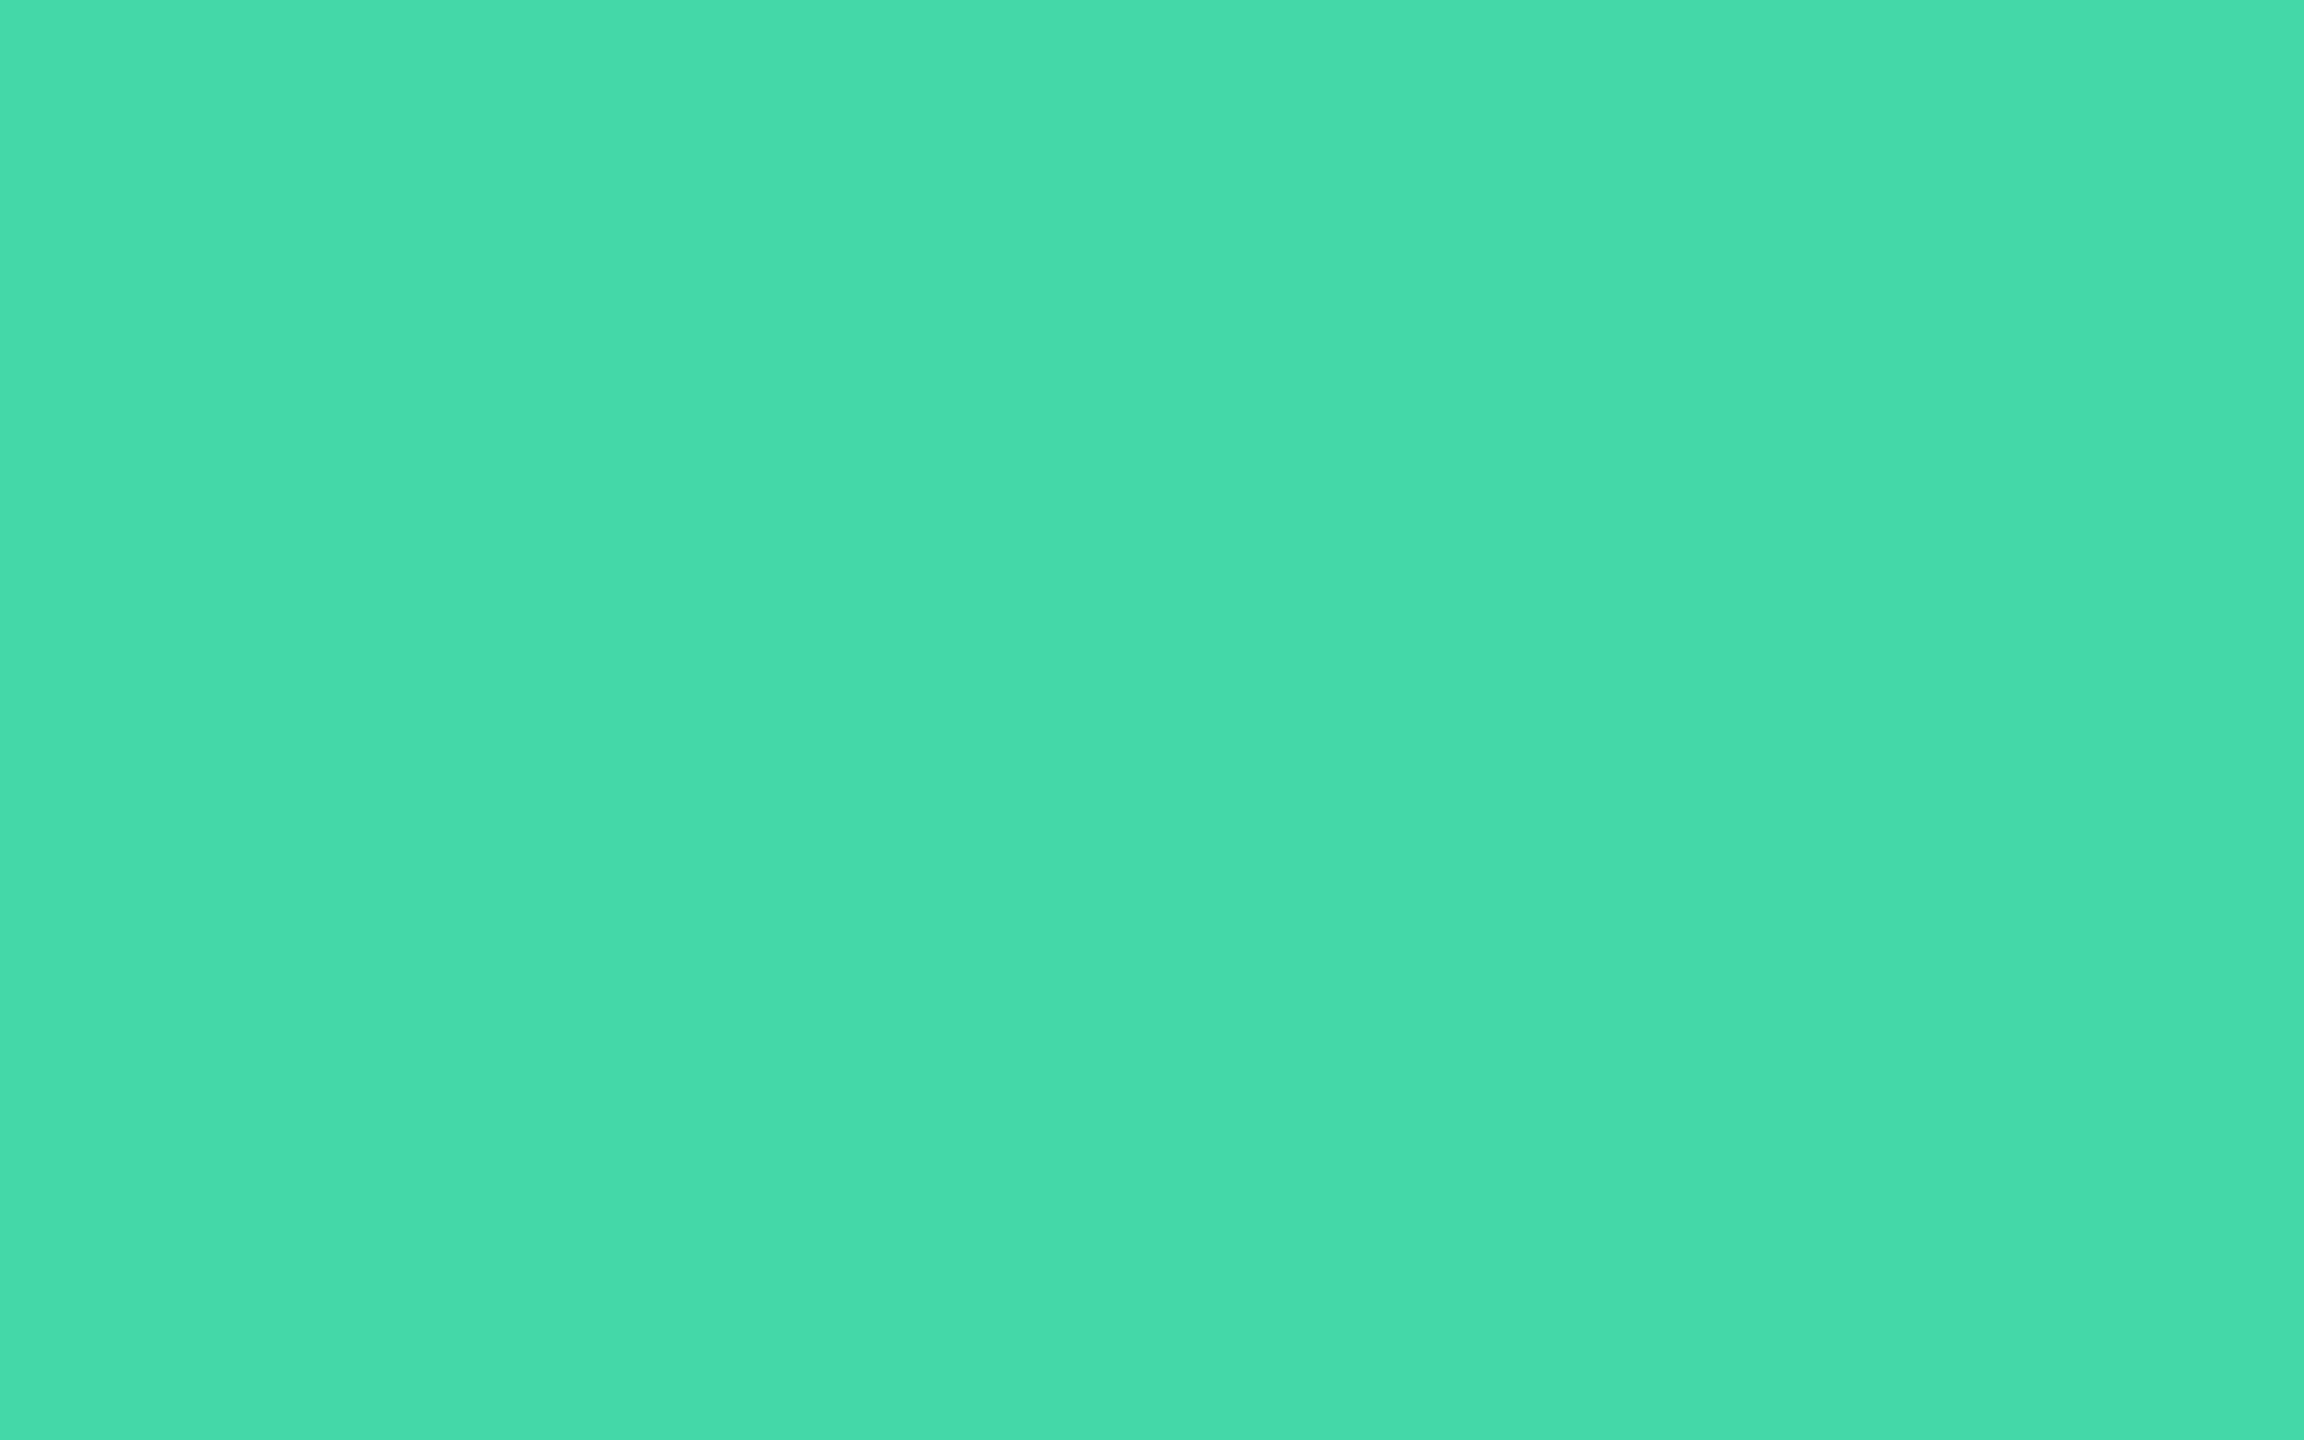 2304x1440 Eucalyptus Solid Color Background